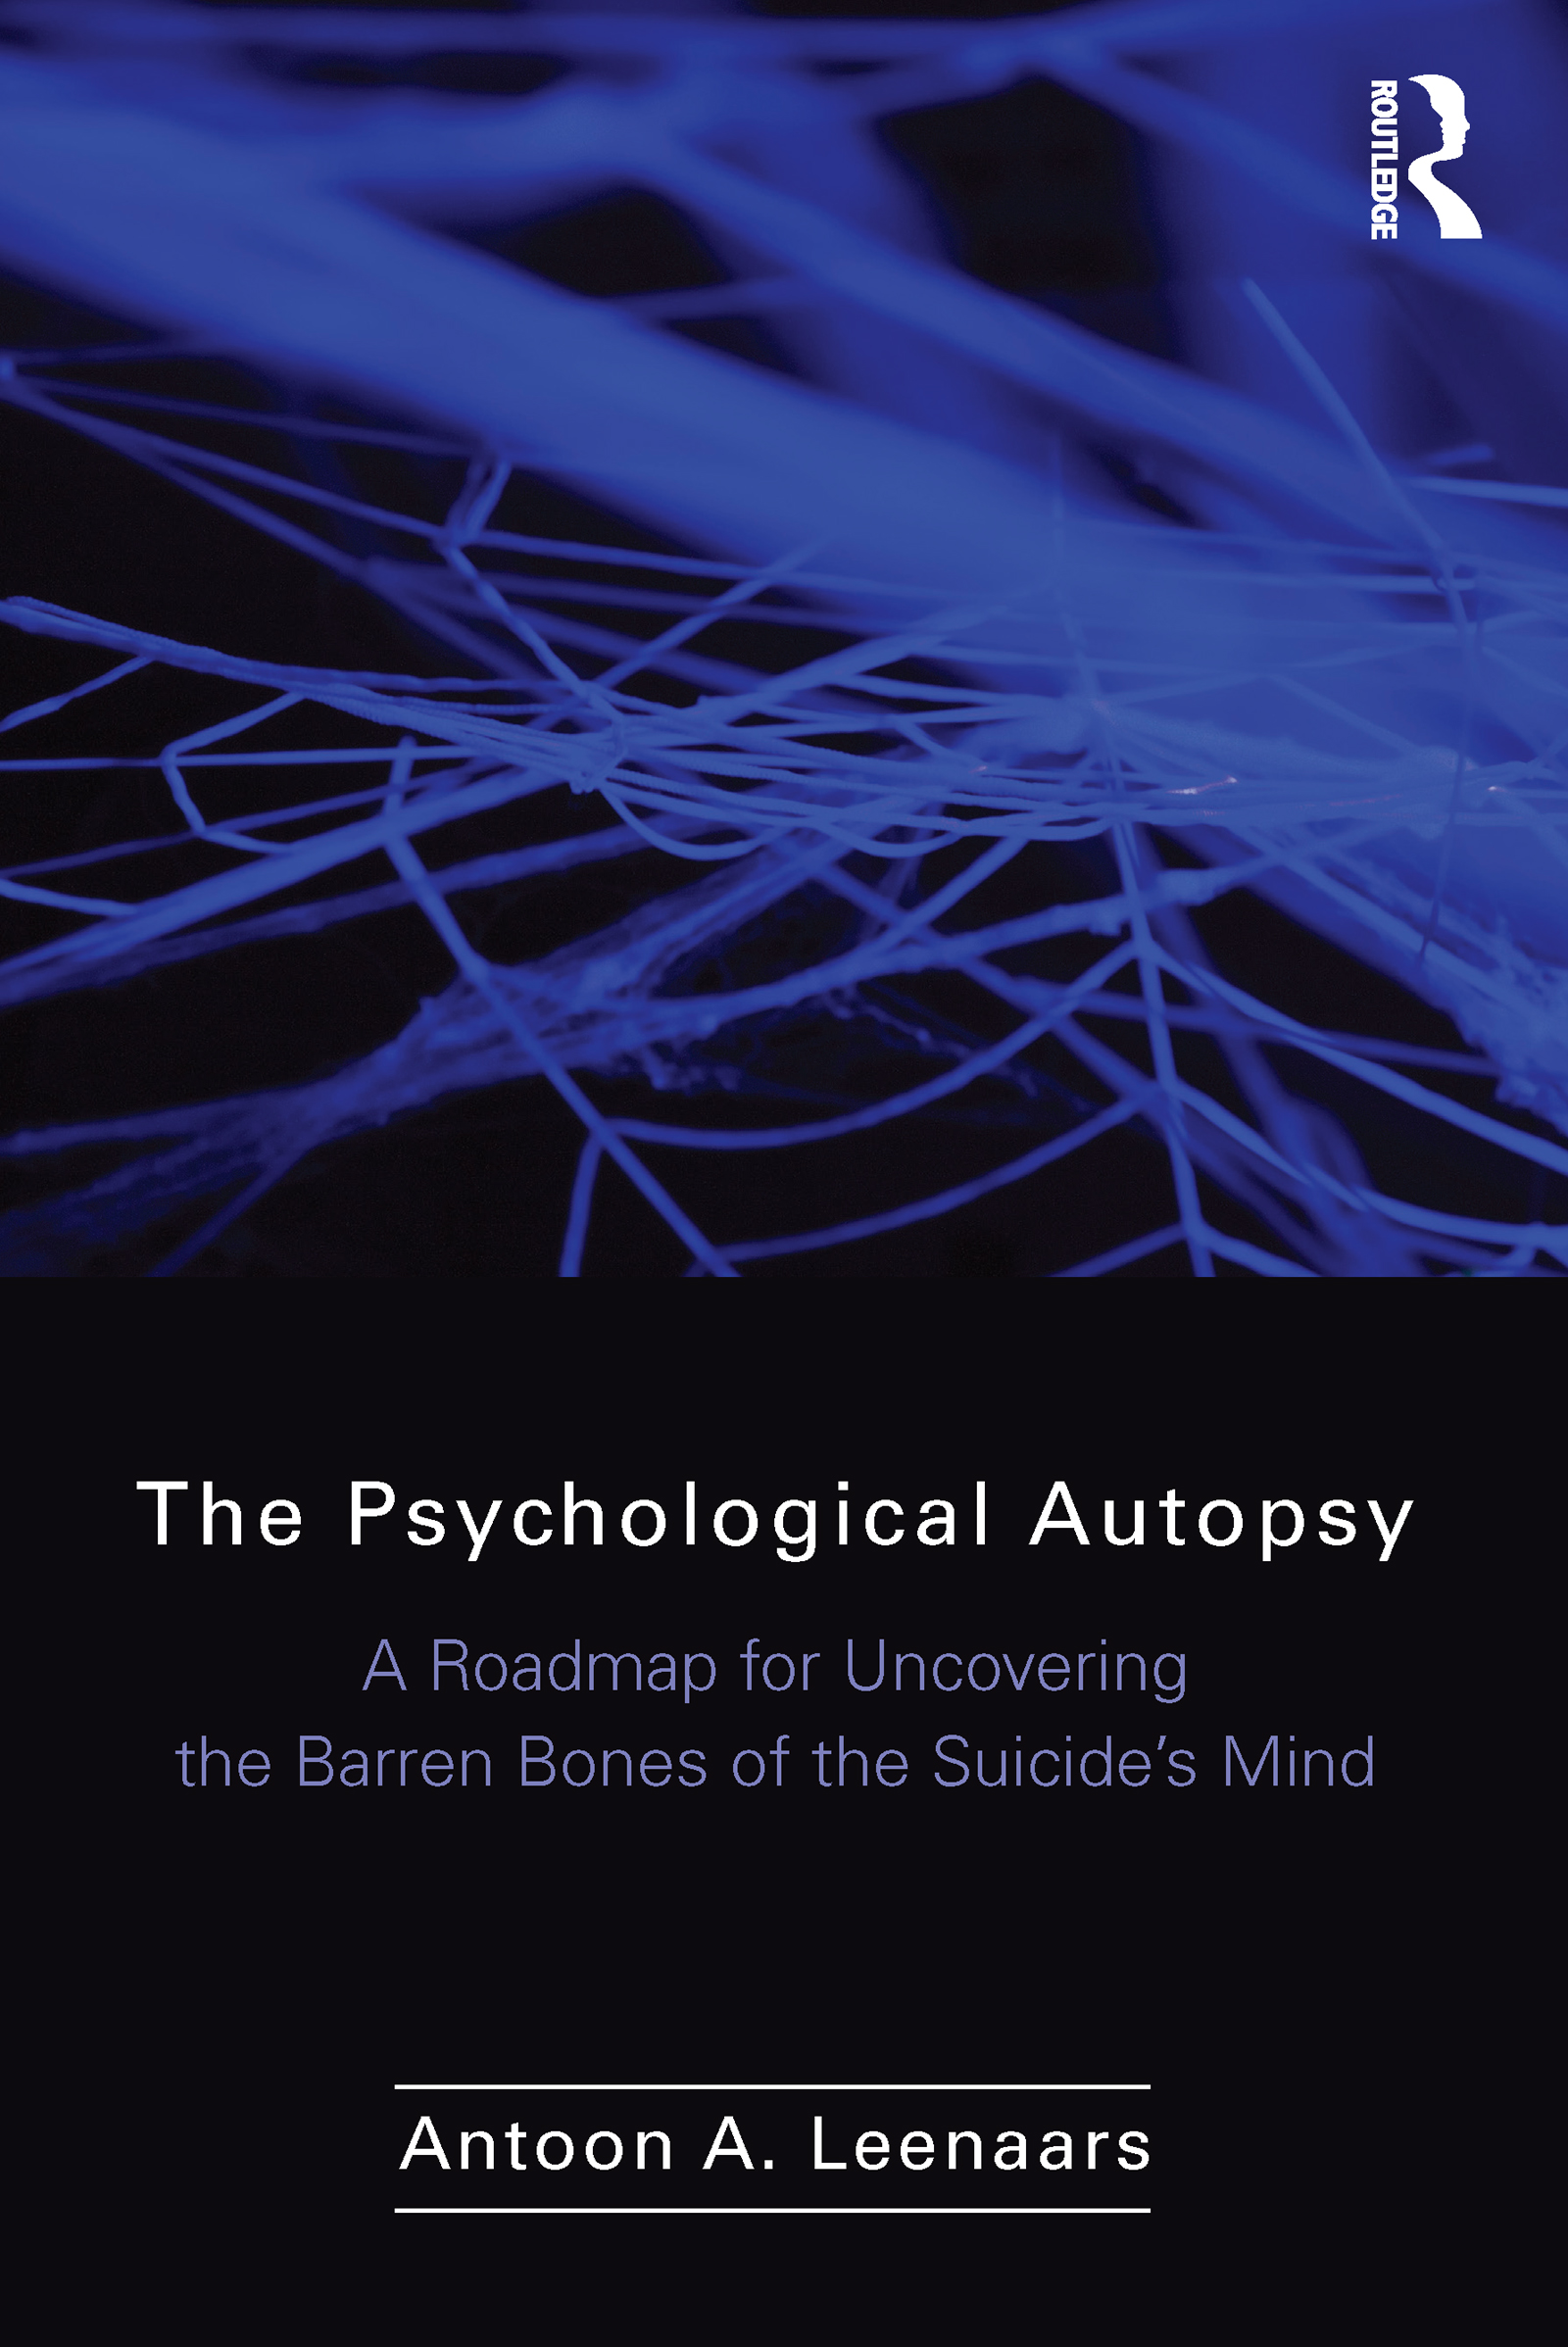 The Psychological Autopsy